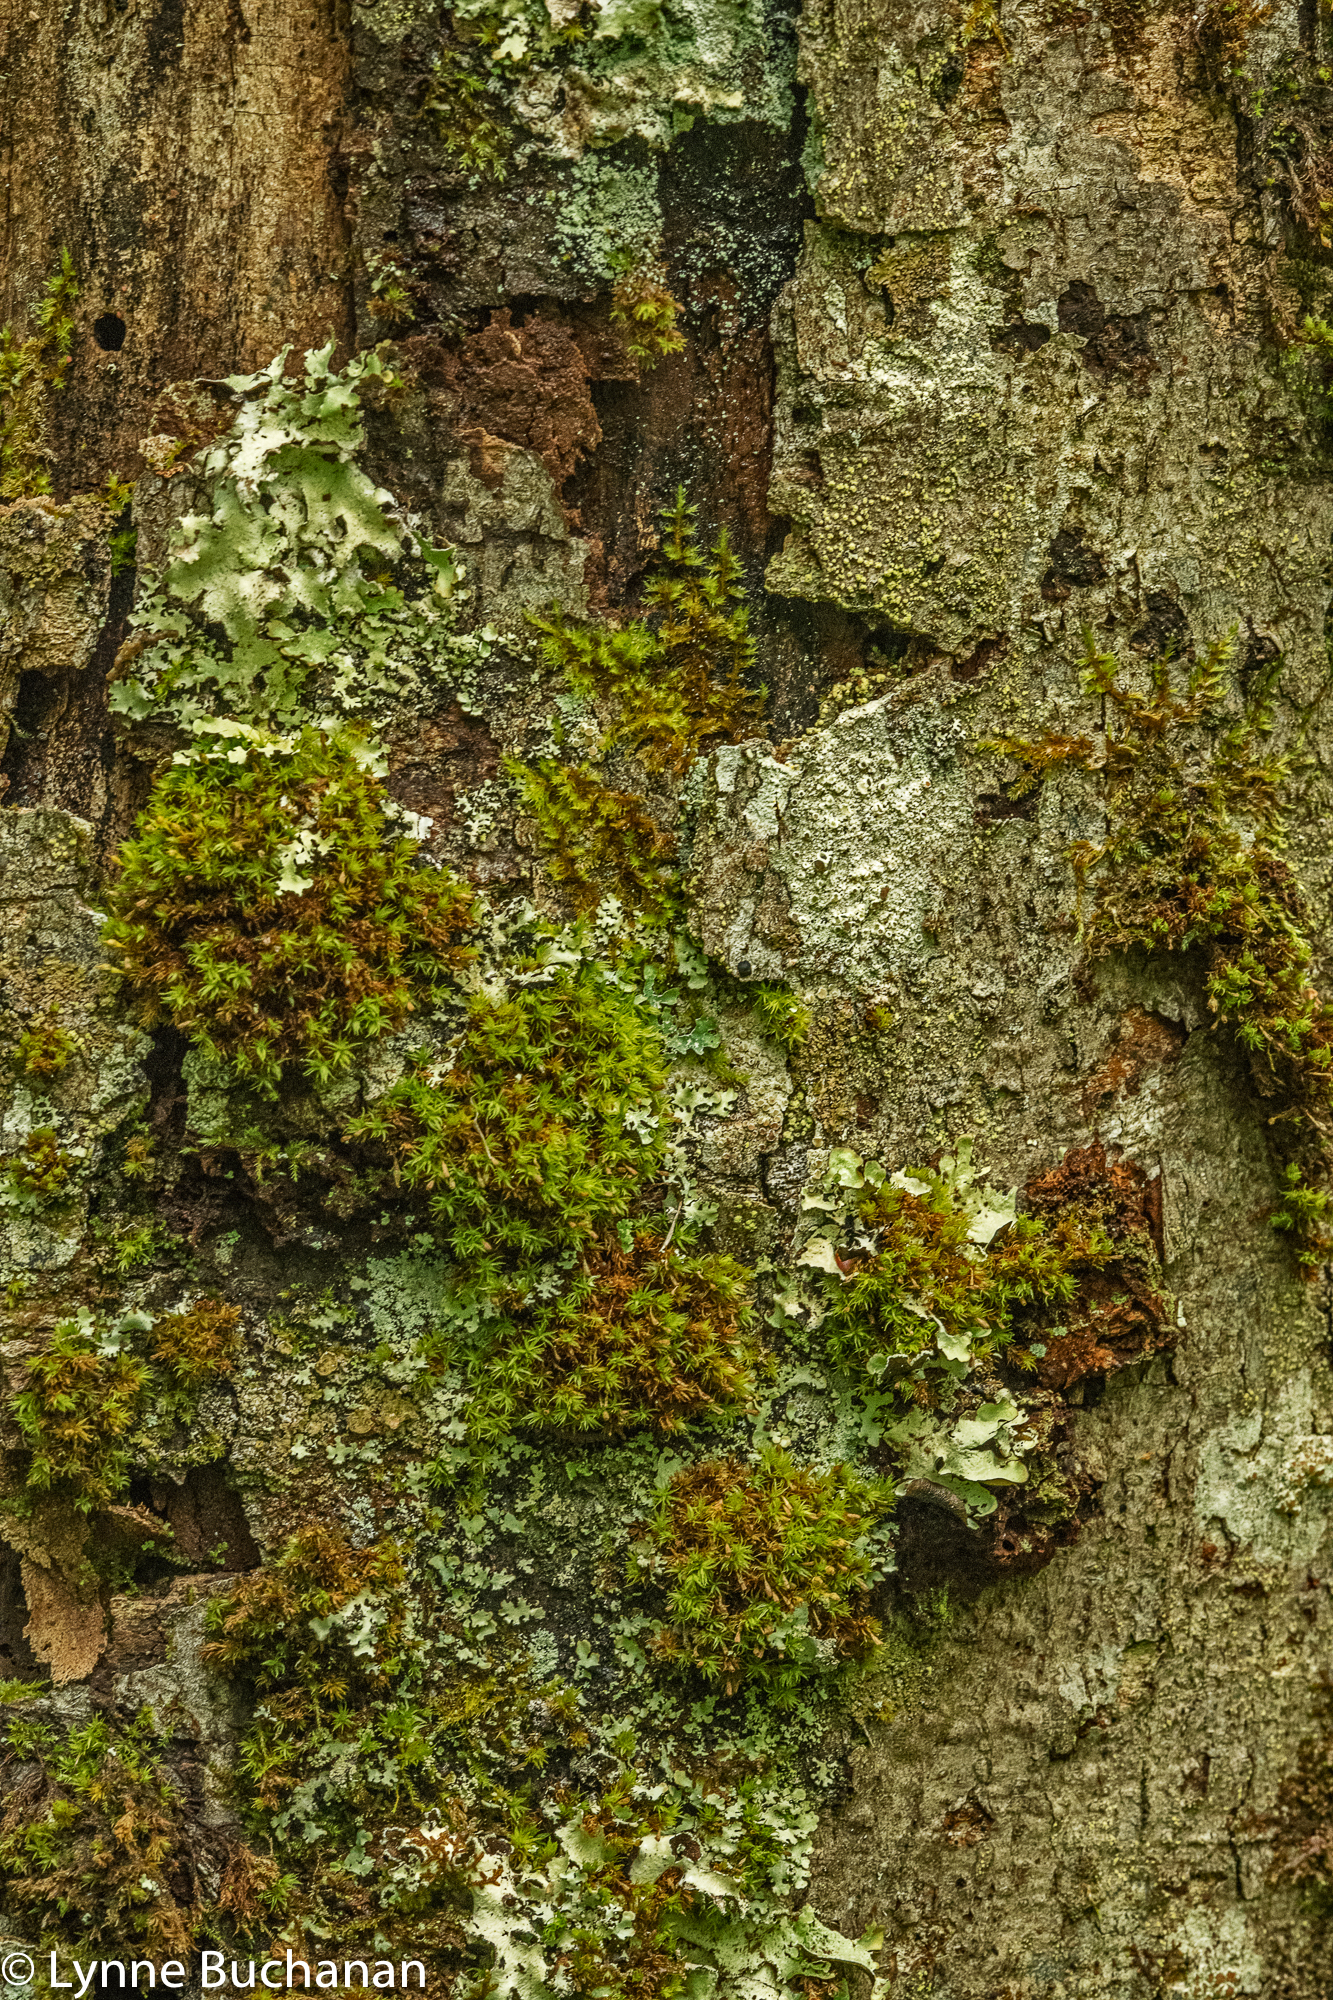 Bark with Lichen and Moss3211.jpg